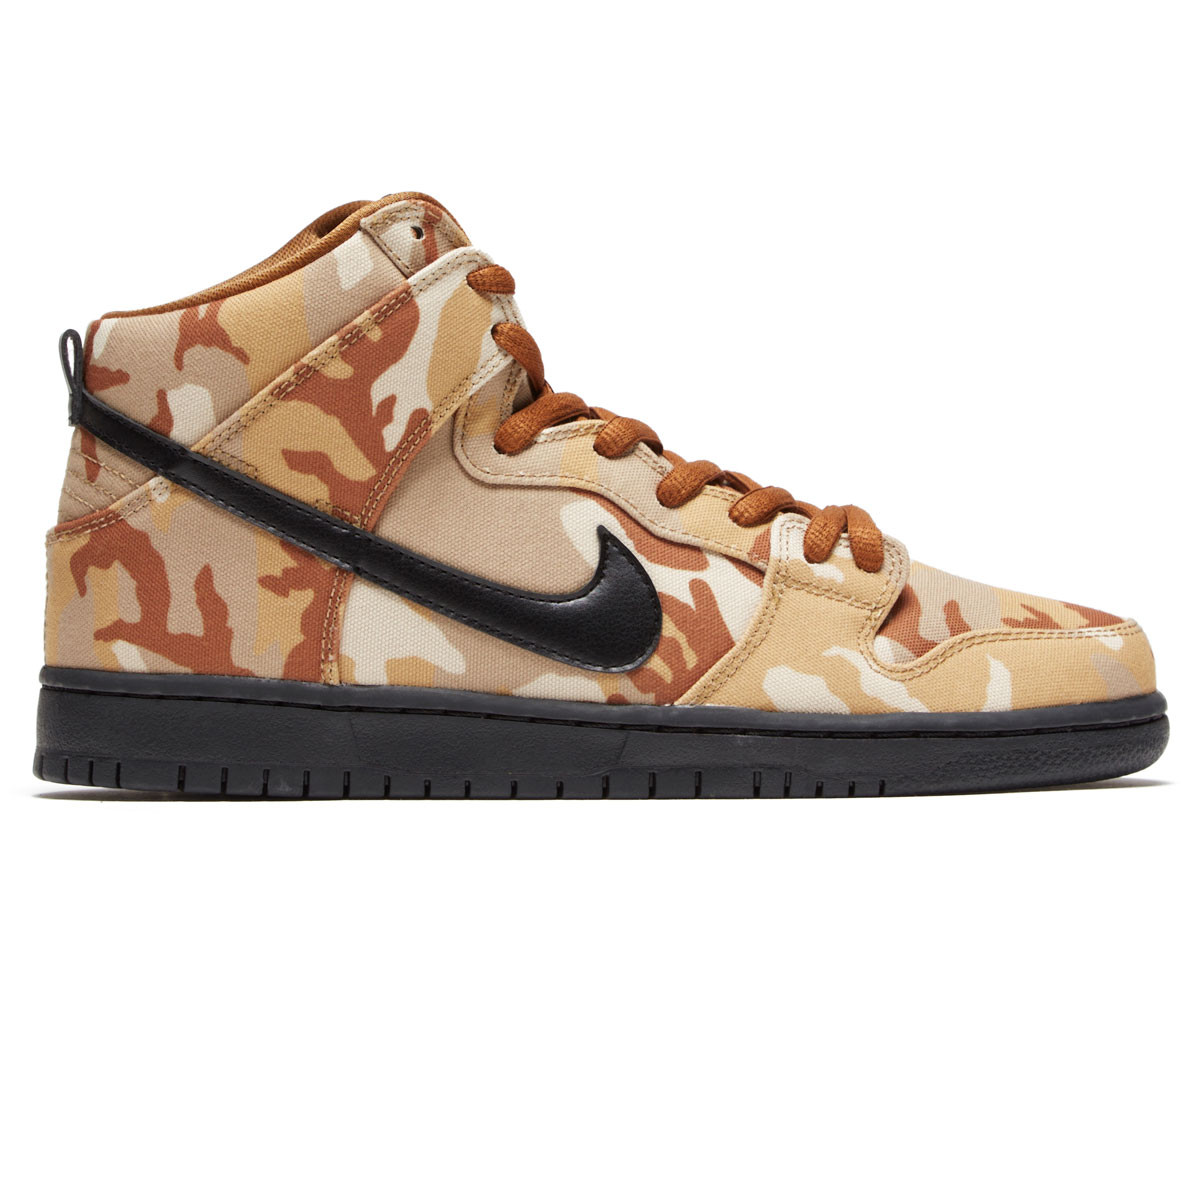 info for 2c4ff 1cd38 Nike SB Dunk High Pro Shoes - Parachute Beige Black Ale Brown - 6.0